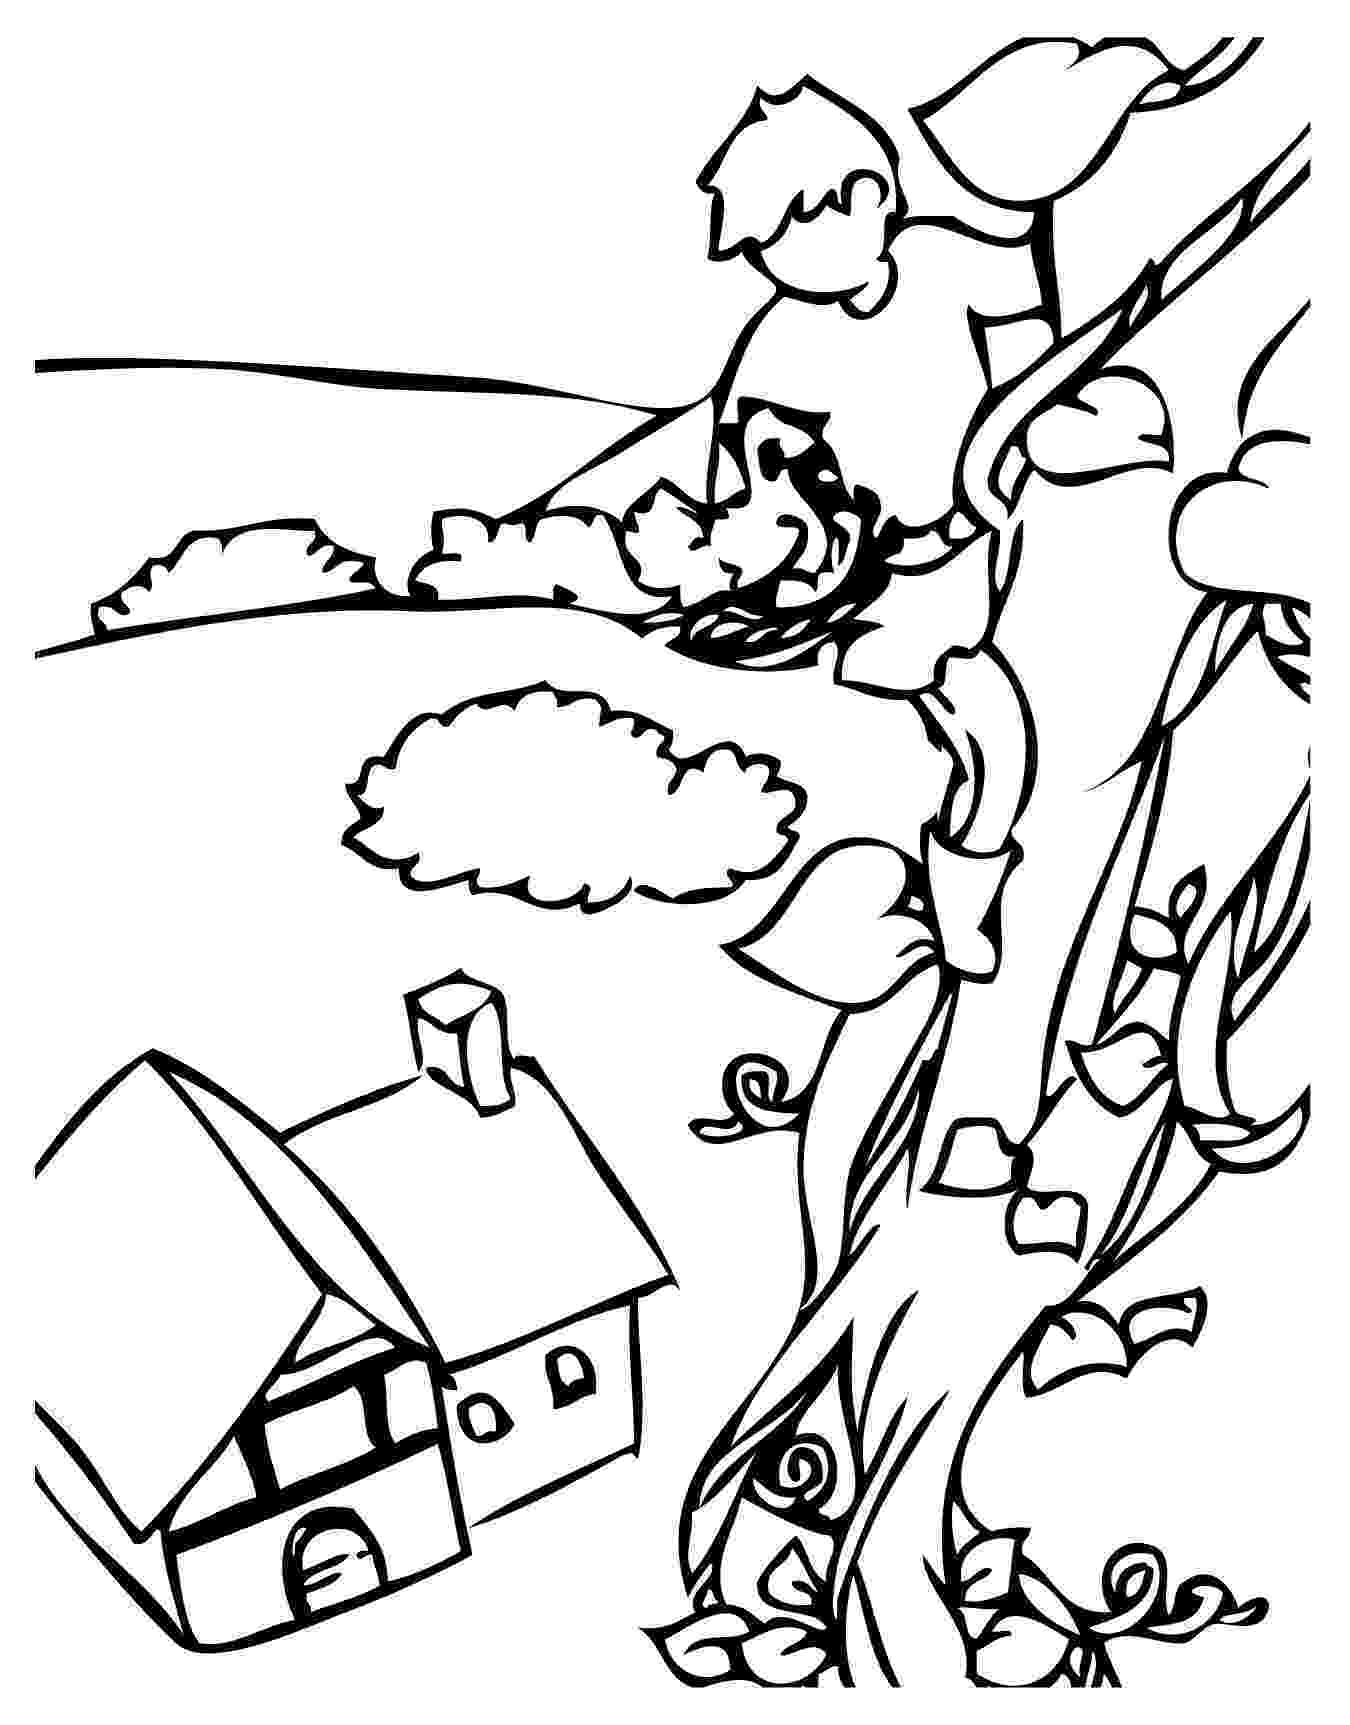 beanstalk coloring page jack and the beanstalk coloring pages coloring home coloring beanstalk page